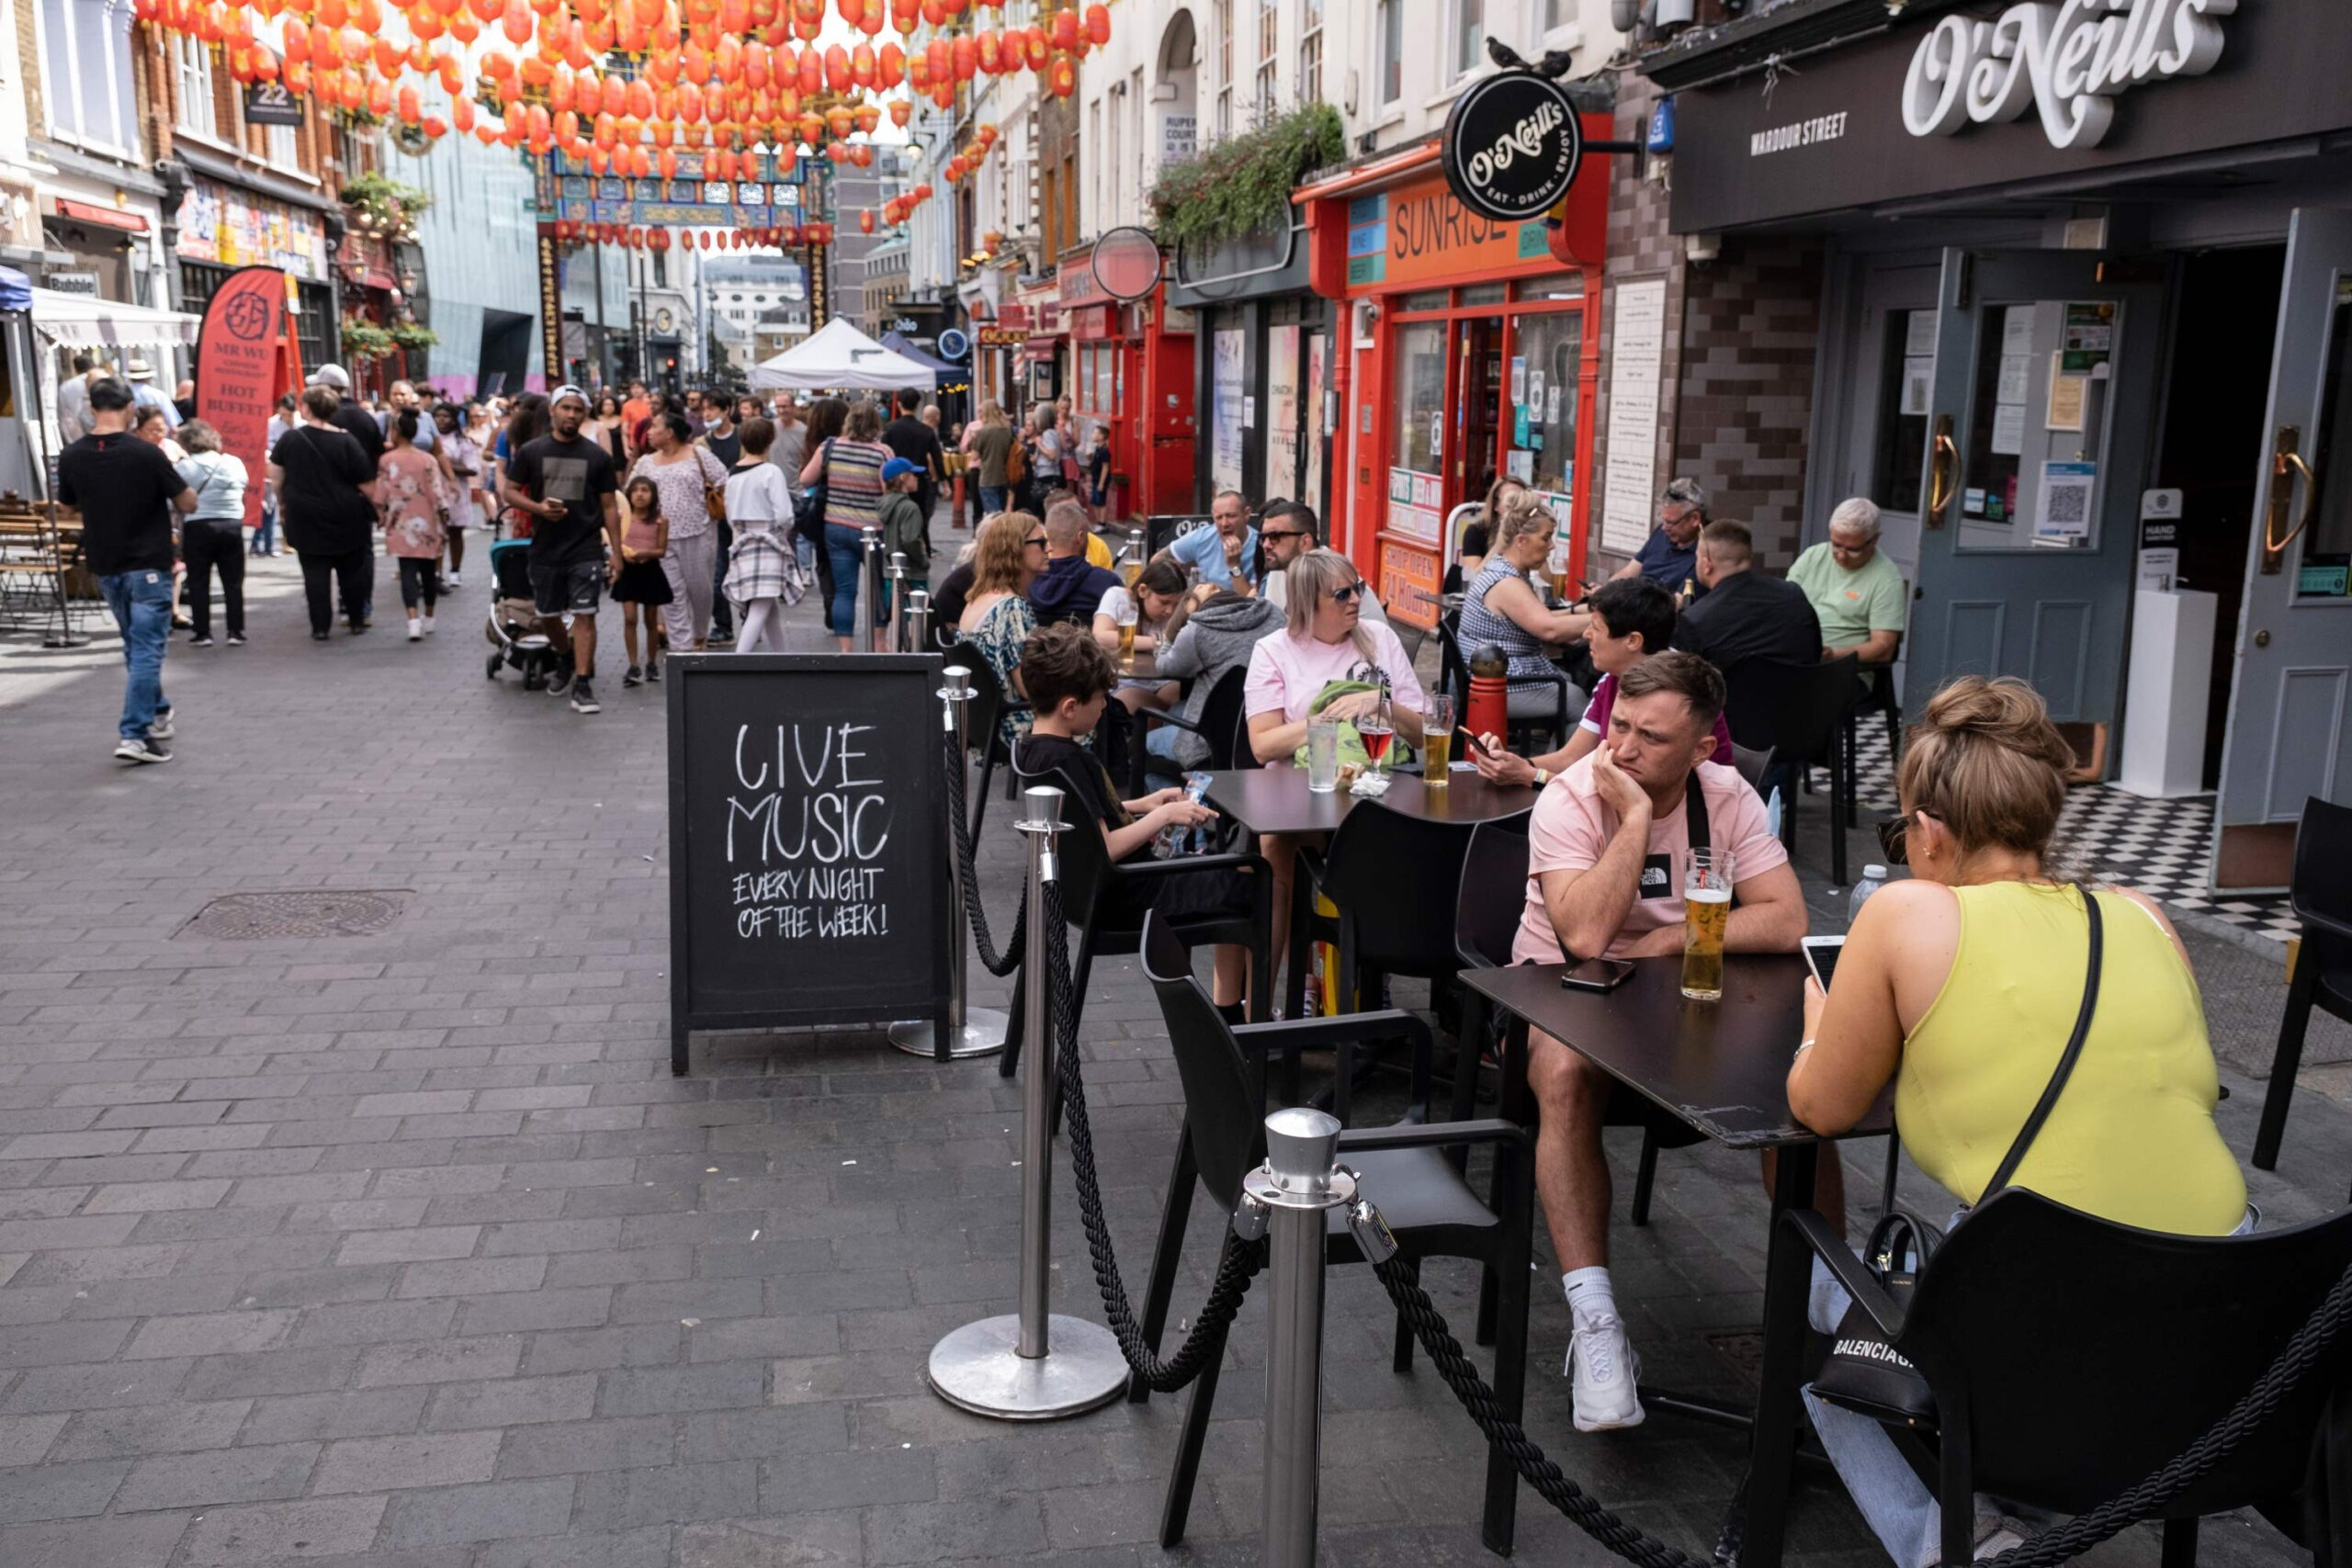 <i>Mike Kemp/In Pictures/Getty Images</i><br/>UK inflation spikes at a record rate in August. This image from August 10 shows restaurant diners in London's Chinatown.